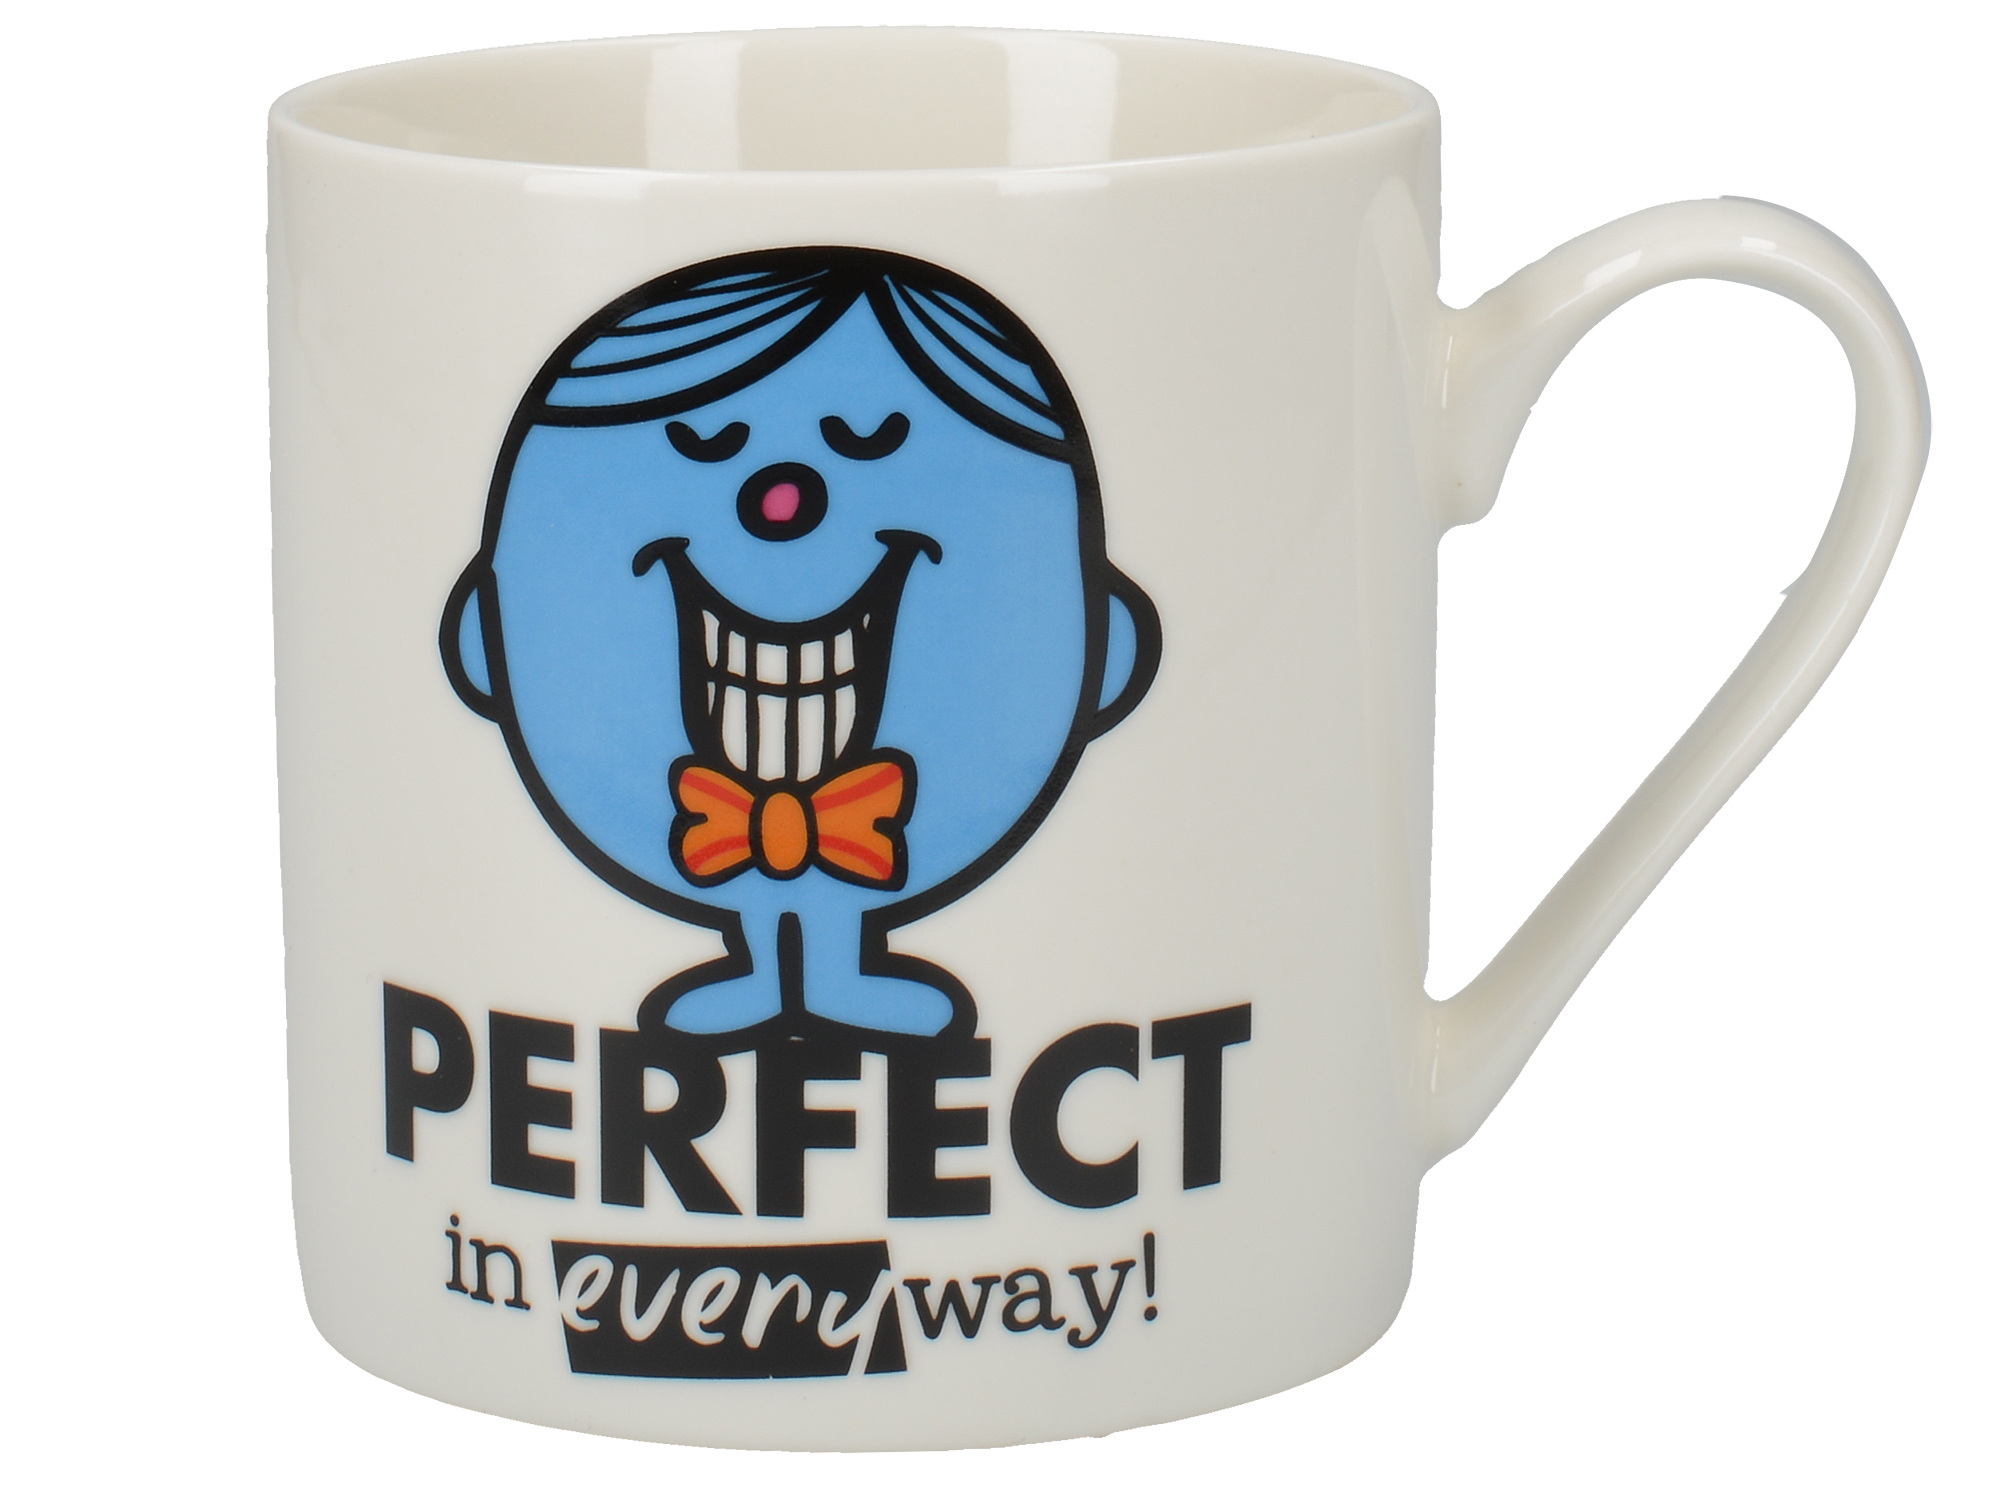 Mr Men Mr Perfect Can Mug